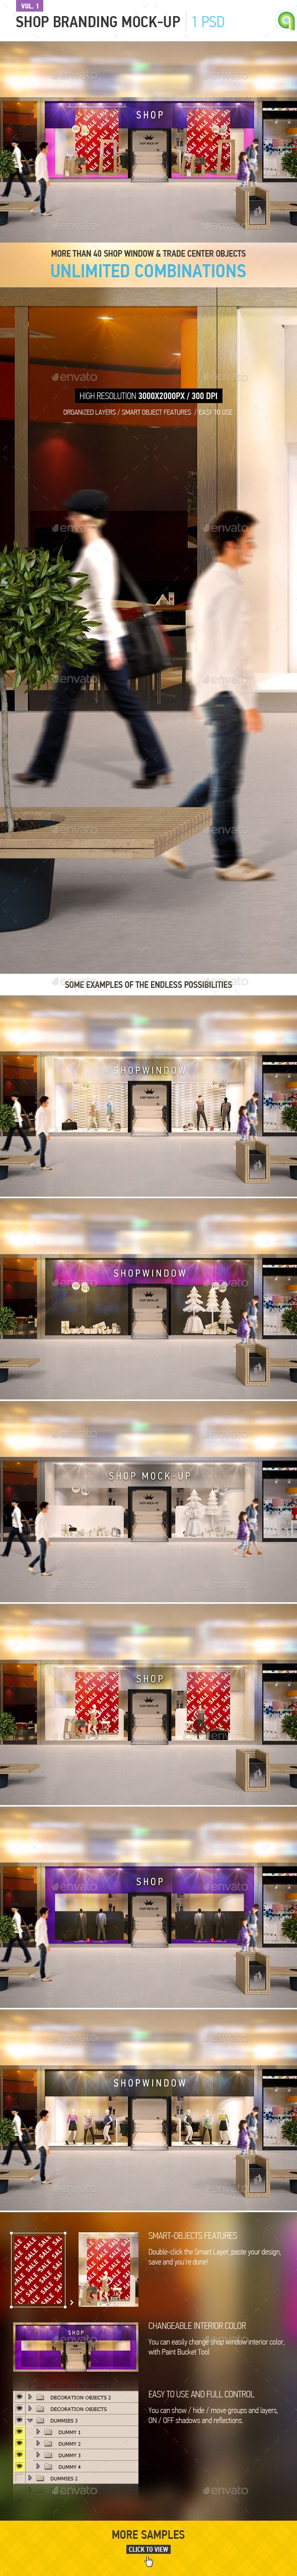 Shop Window Branding Mockup Photoshop Psd Christmass Cloth Available Here Https Graphicriver Net Item Shop Window Branding Mock Branding Window Brands